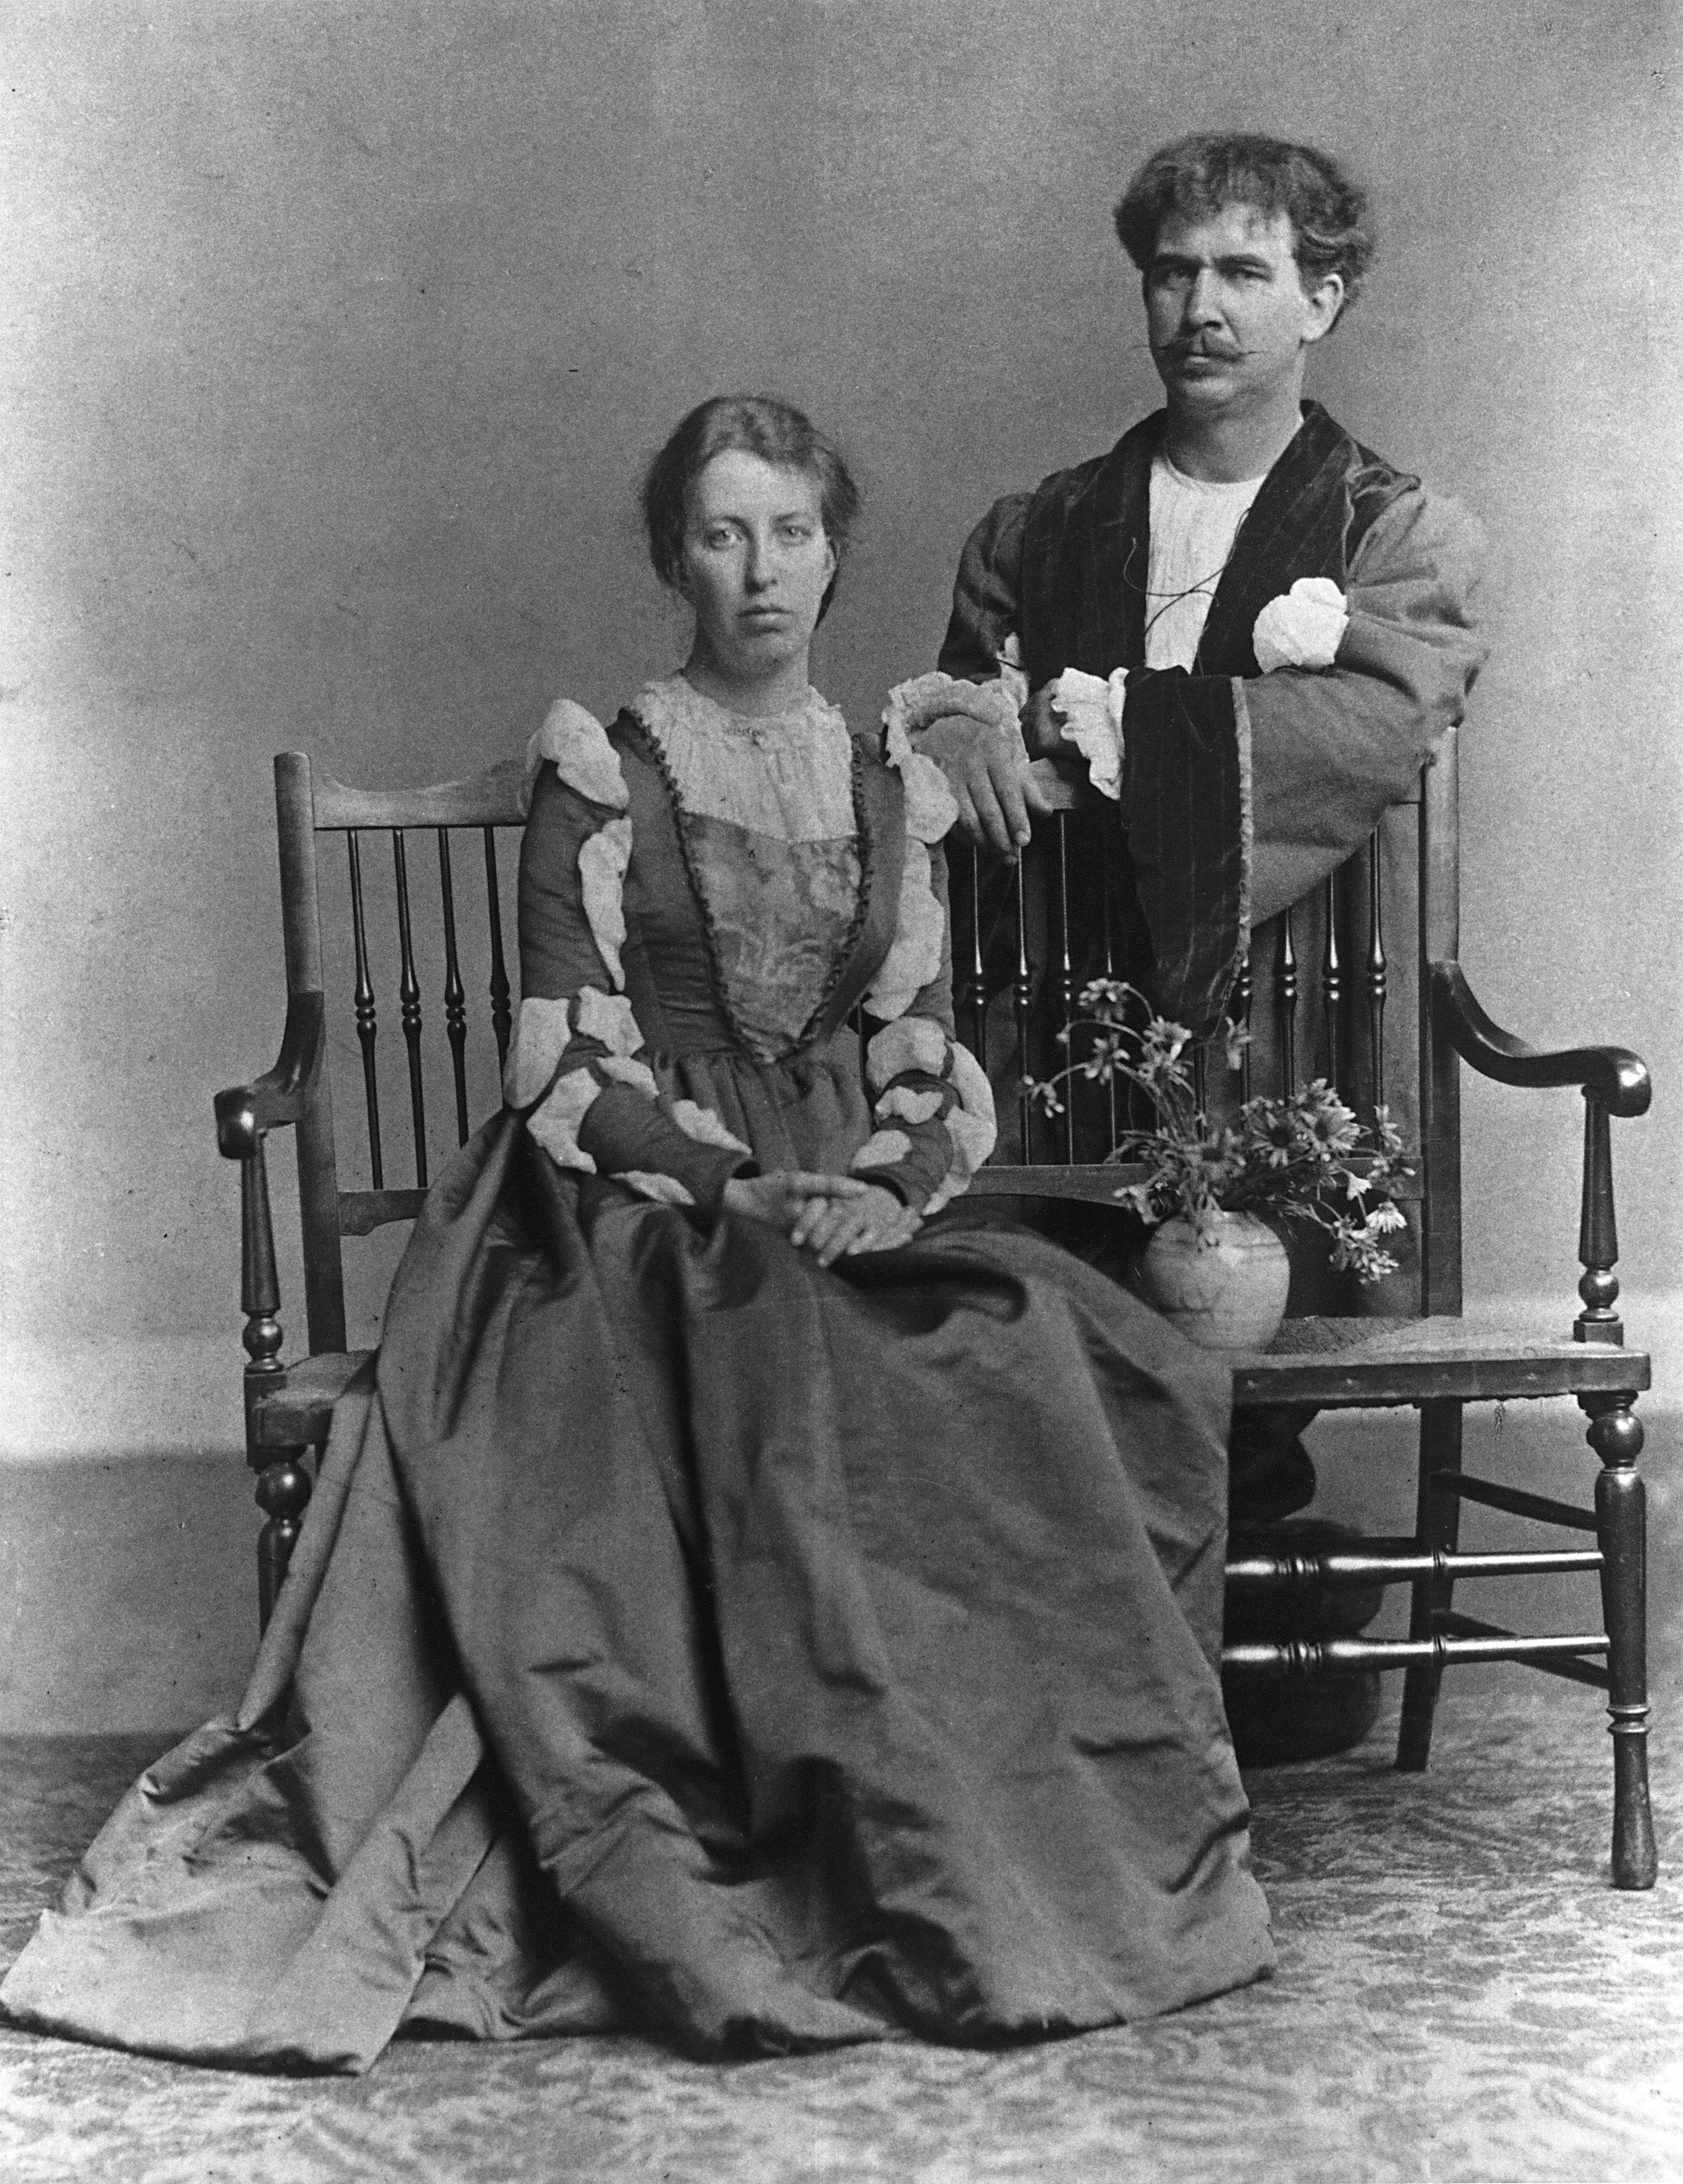 Fra Newbery and wife Jessie Newbery in costume, late 19th-early 20th century